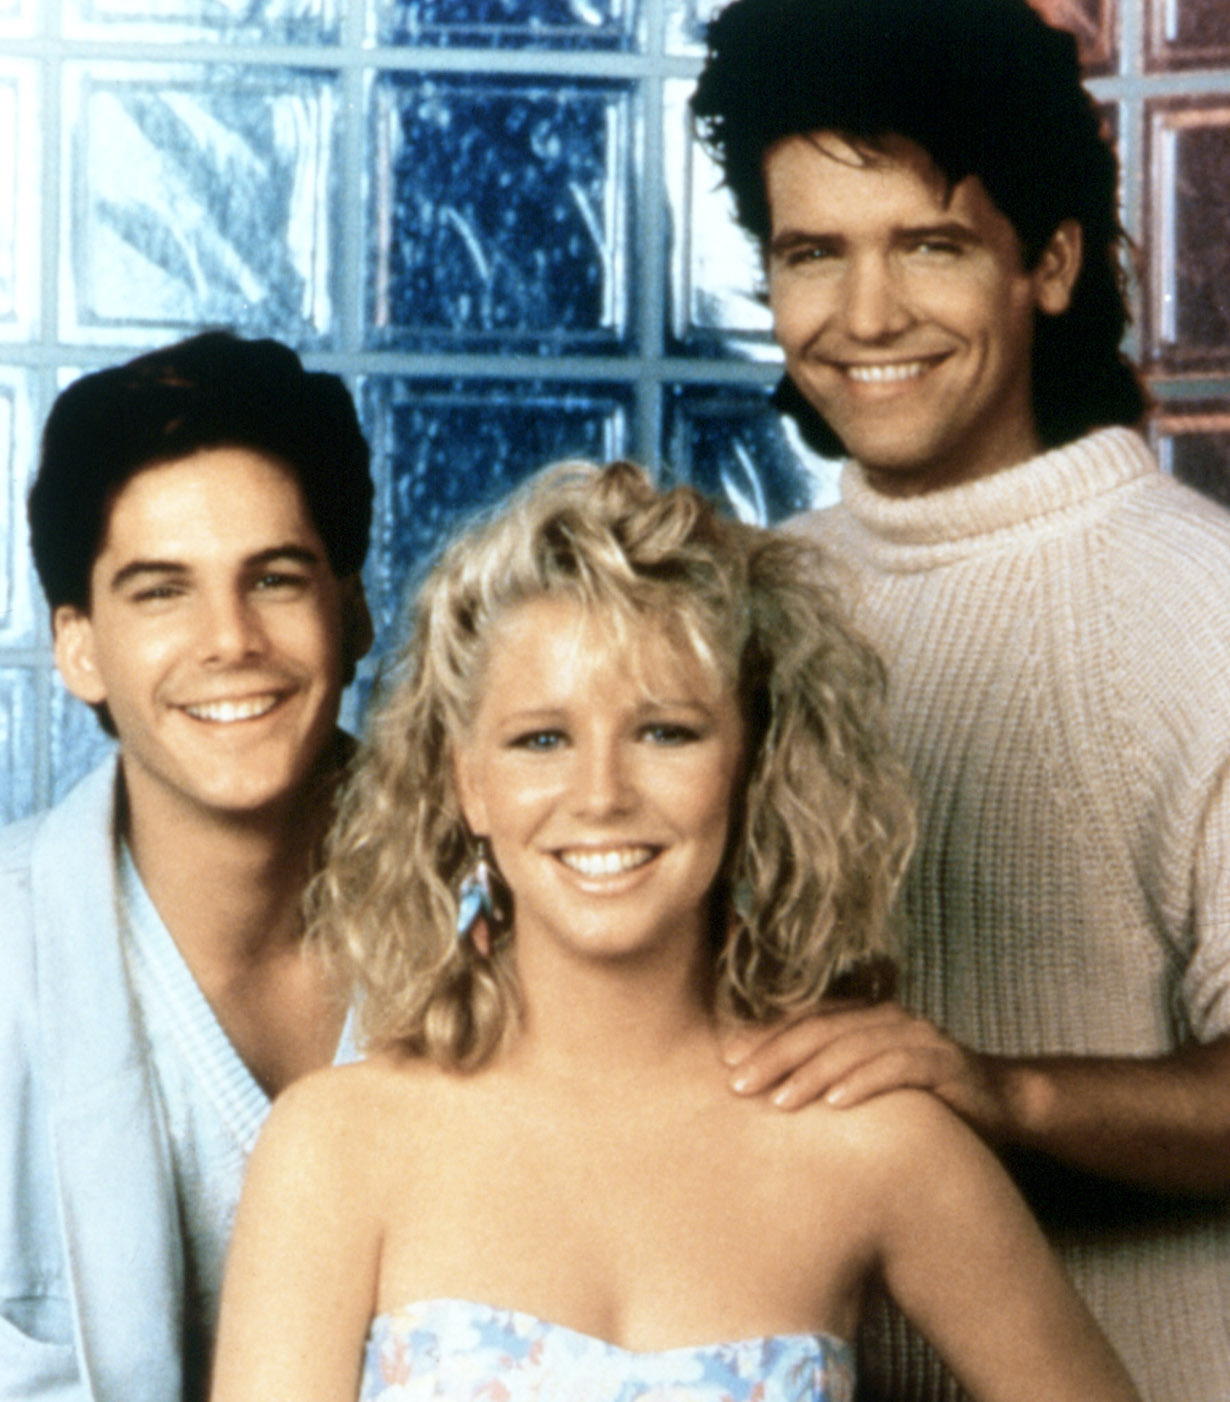 THE YOUNG AND THE RESTLESS, Lauralee Bell (center), Michael Damian (right), Thomas bierdz CBS/Courtesy of the Everett Collection